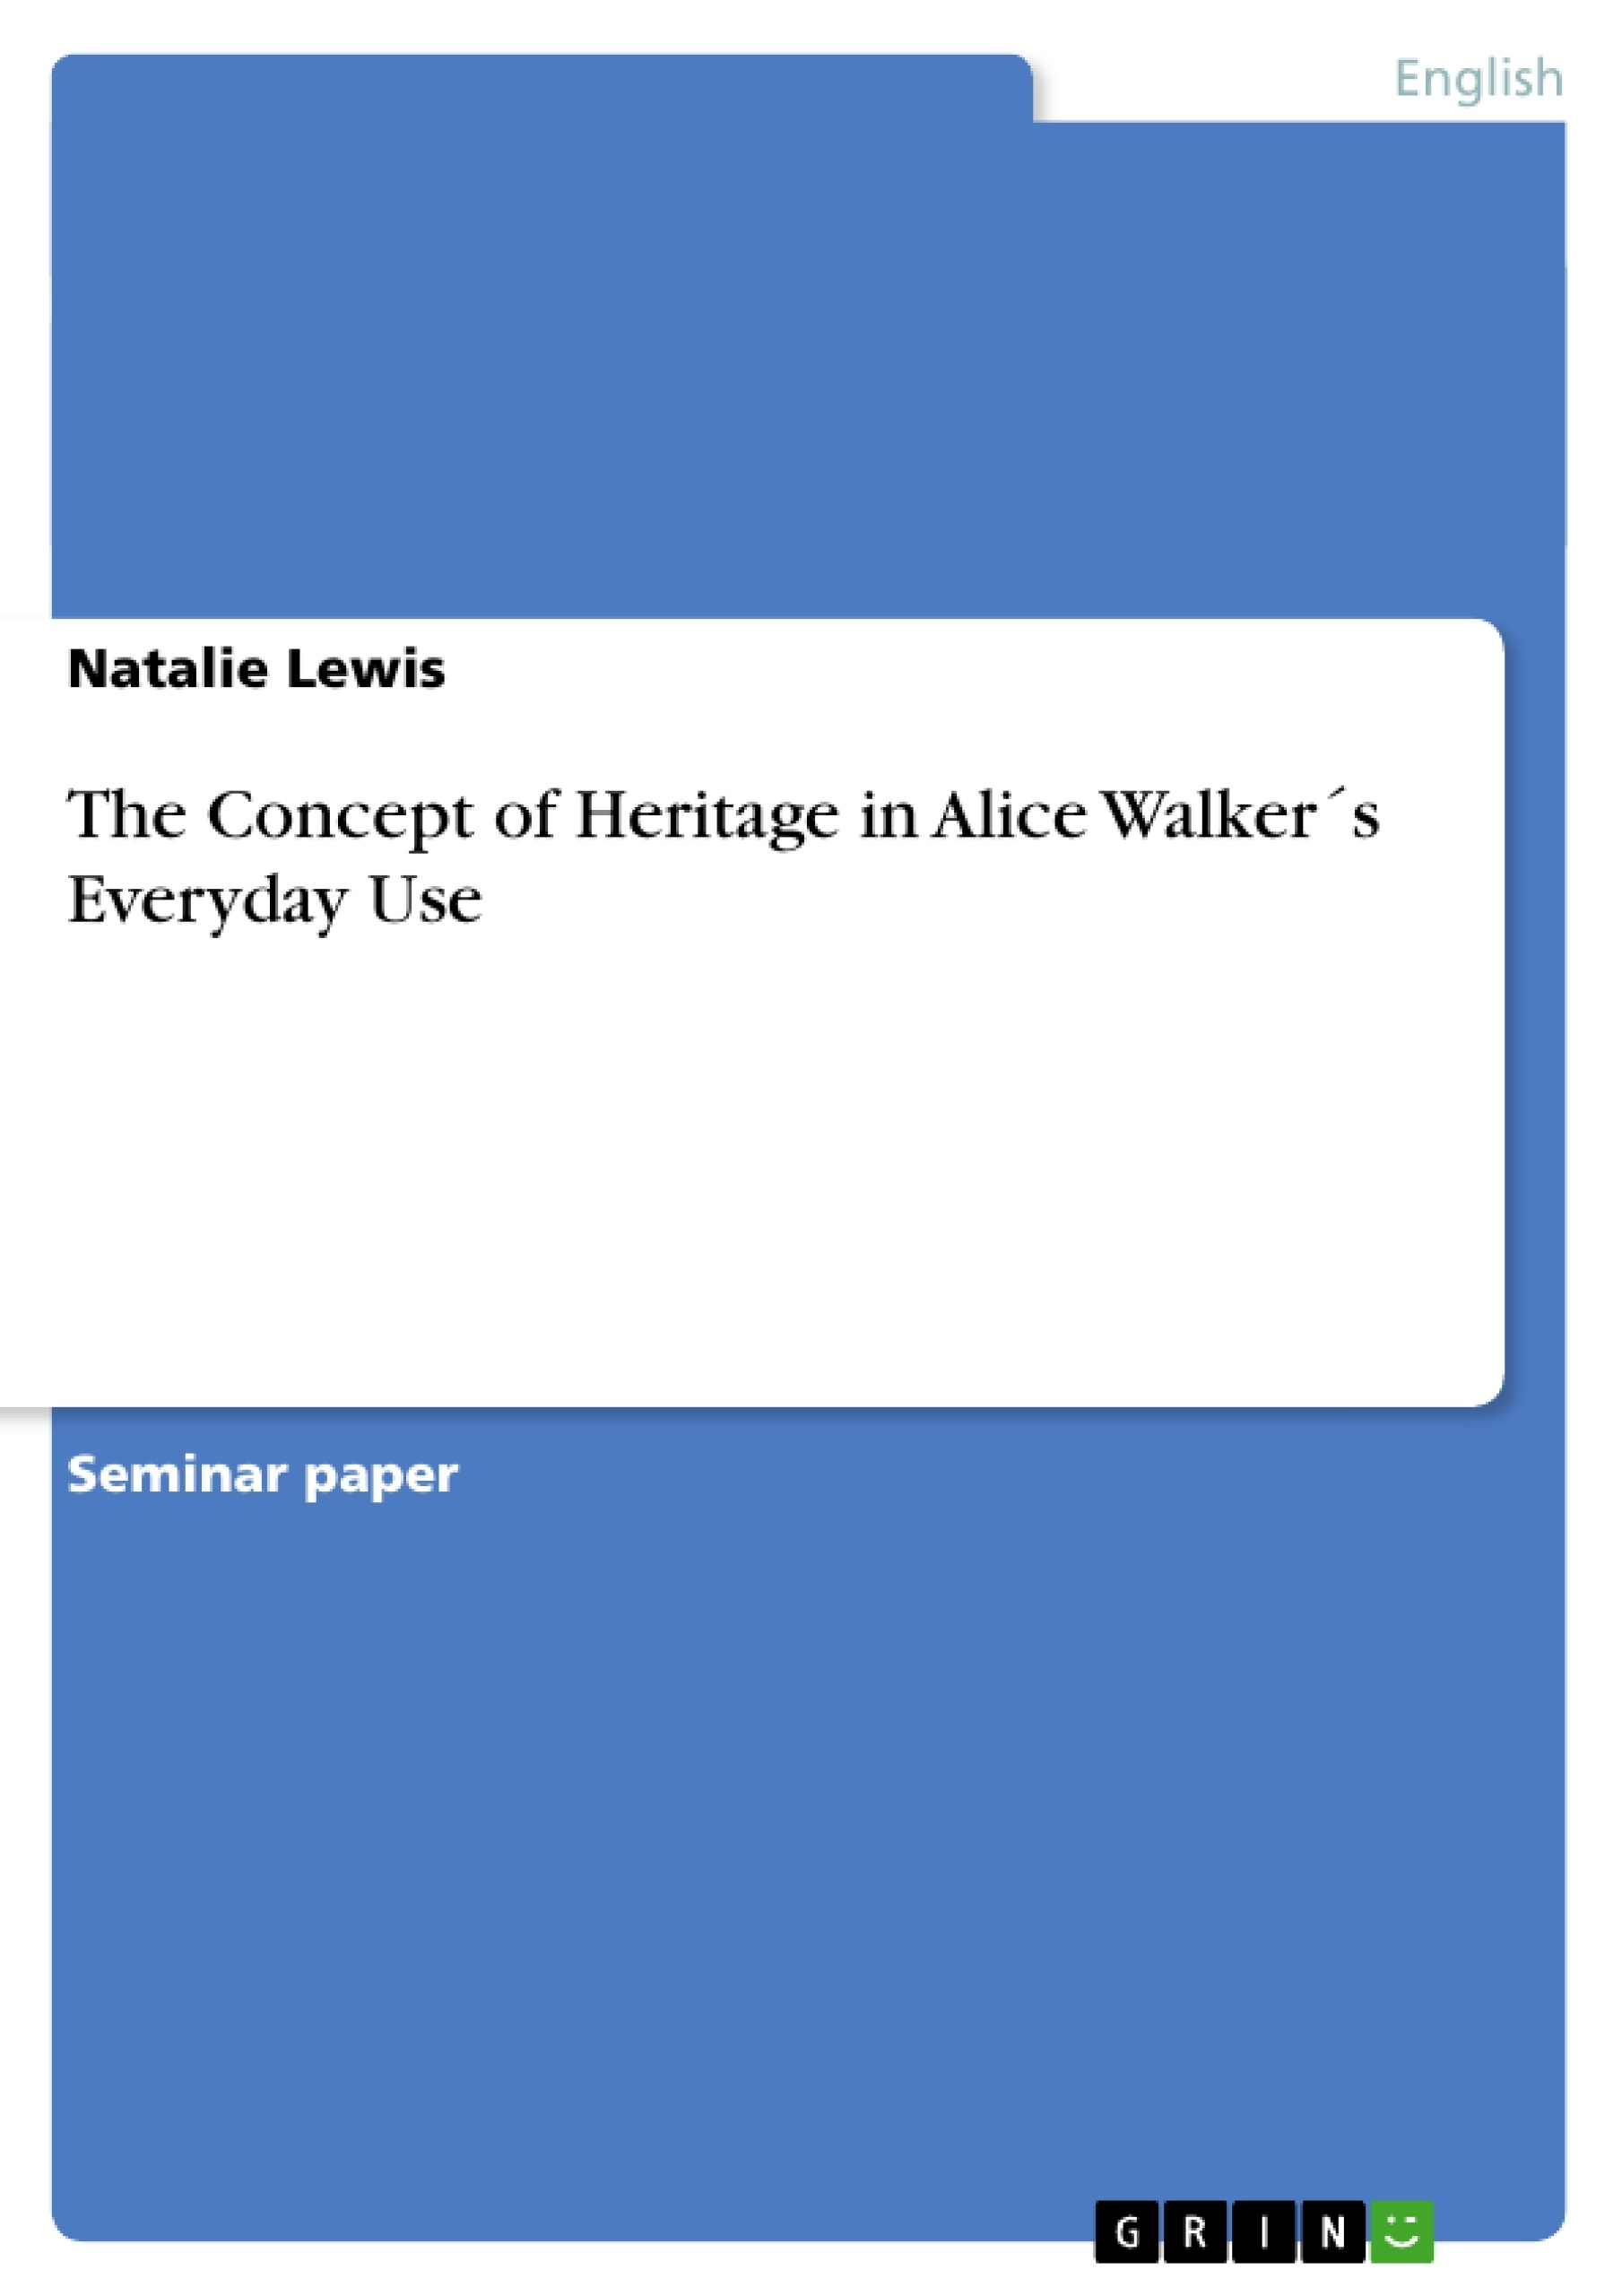 the concept of heritage in alice walker´s everyday use publish  upload your own papers earn money and win an iphone x